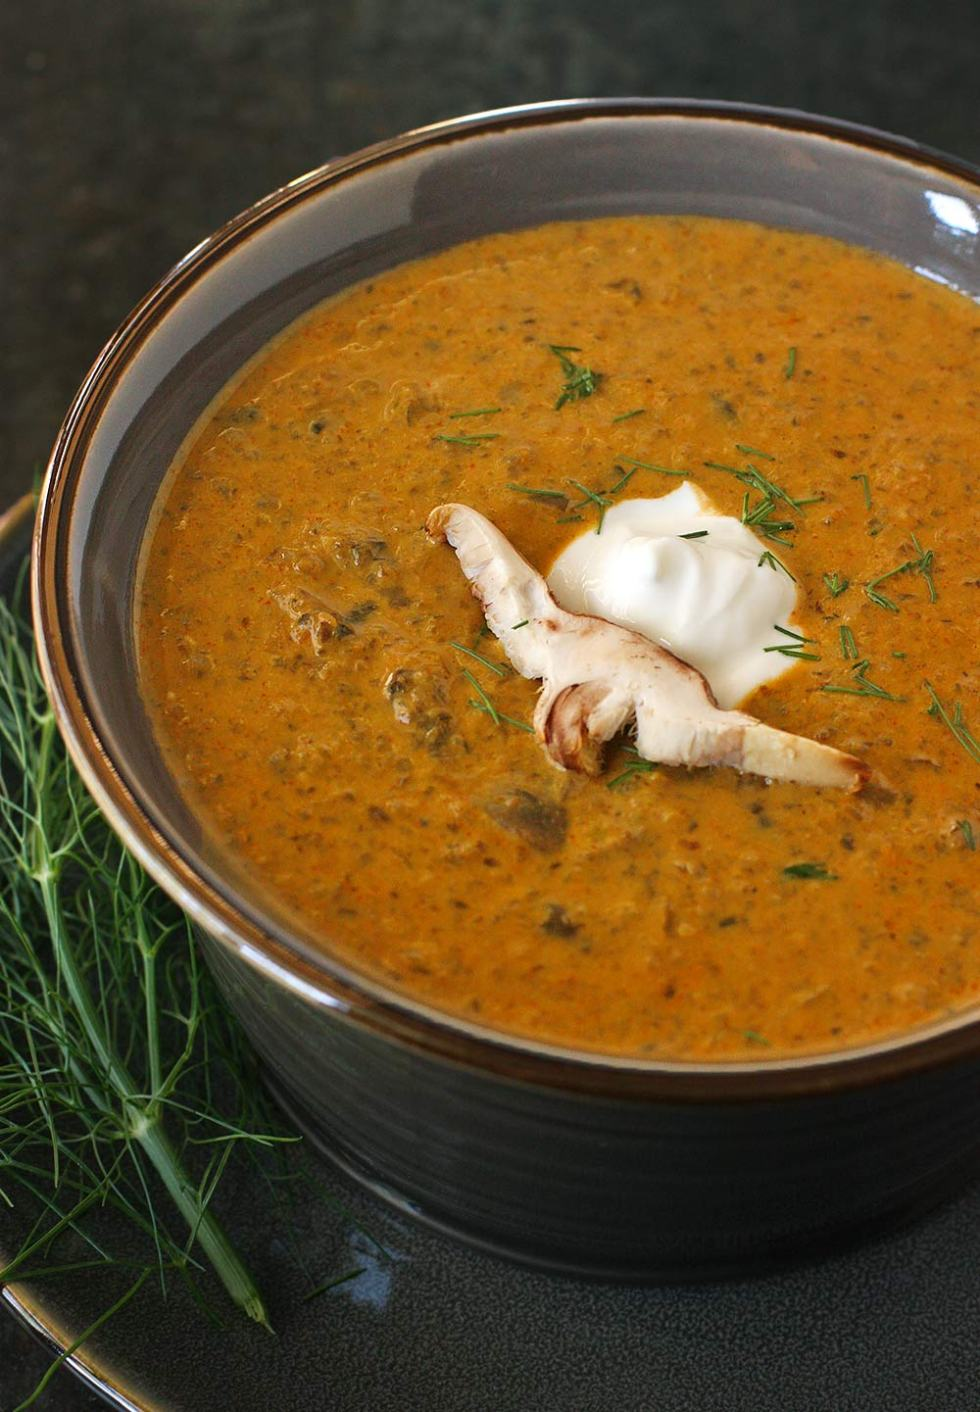 Hungarian Mushroom Soup in a bowl